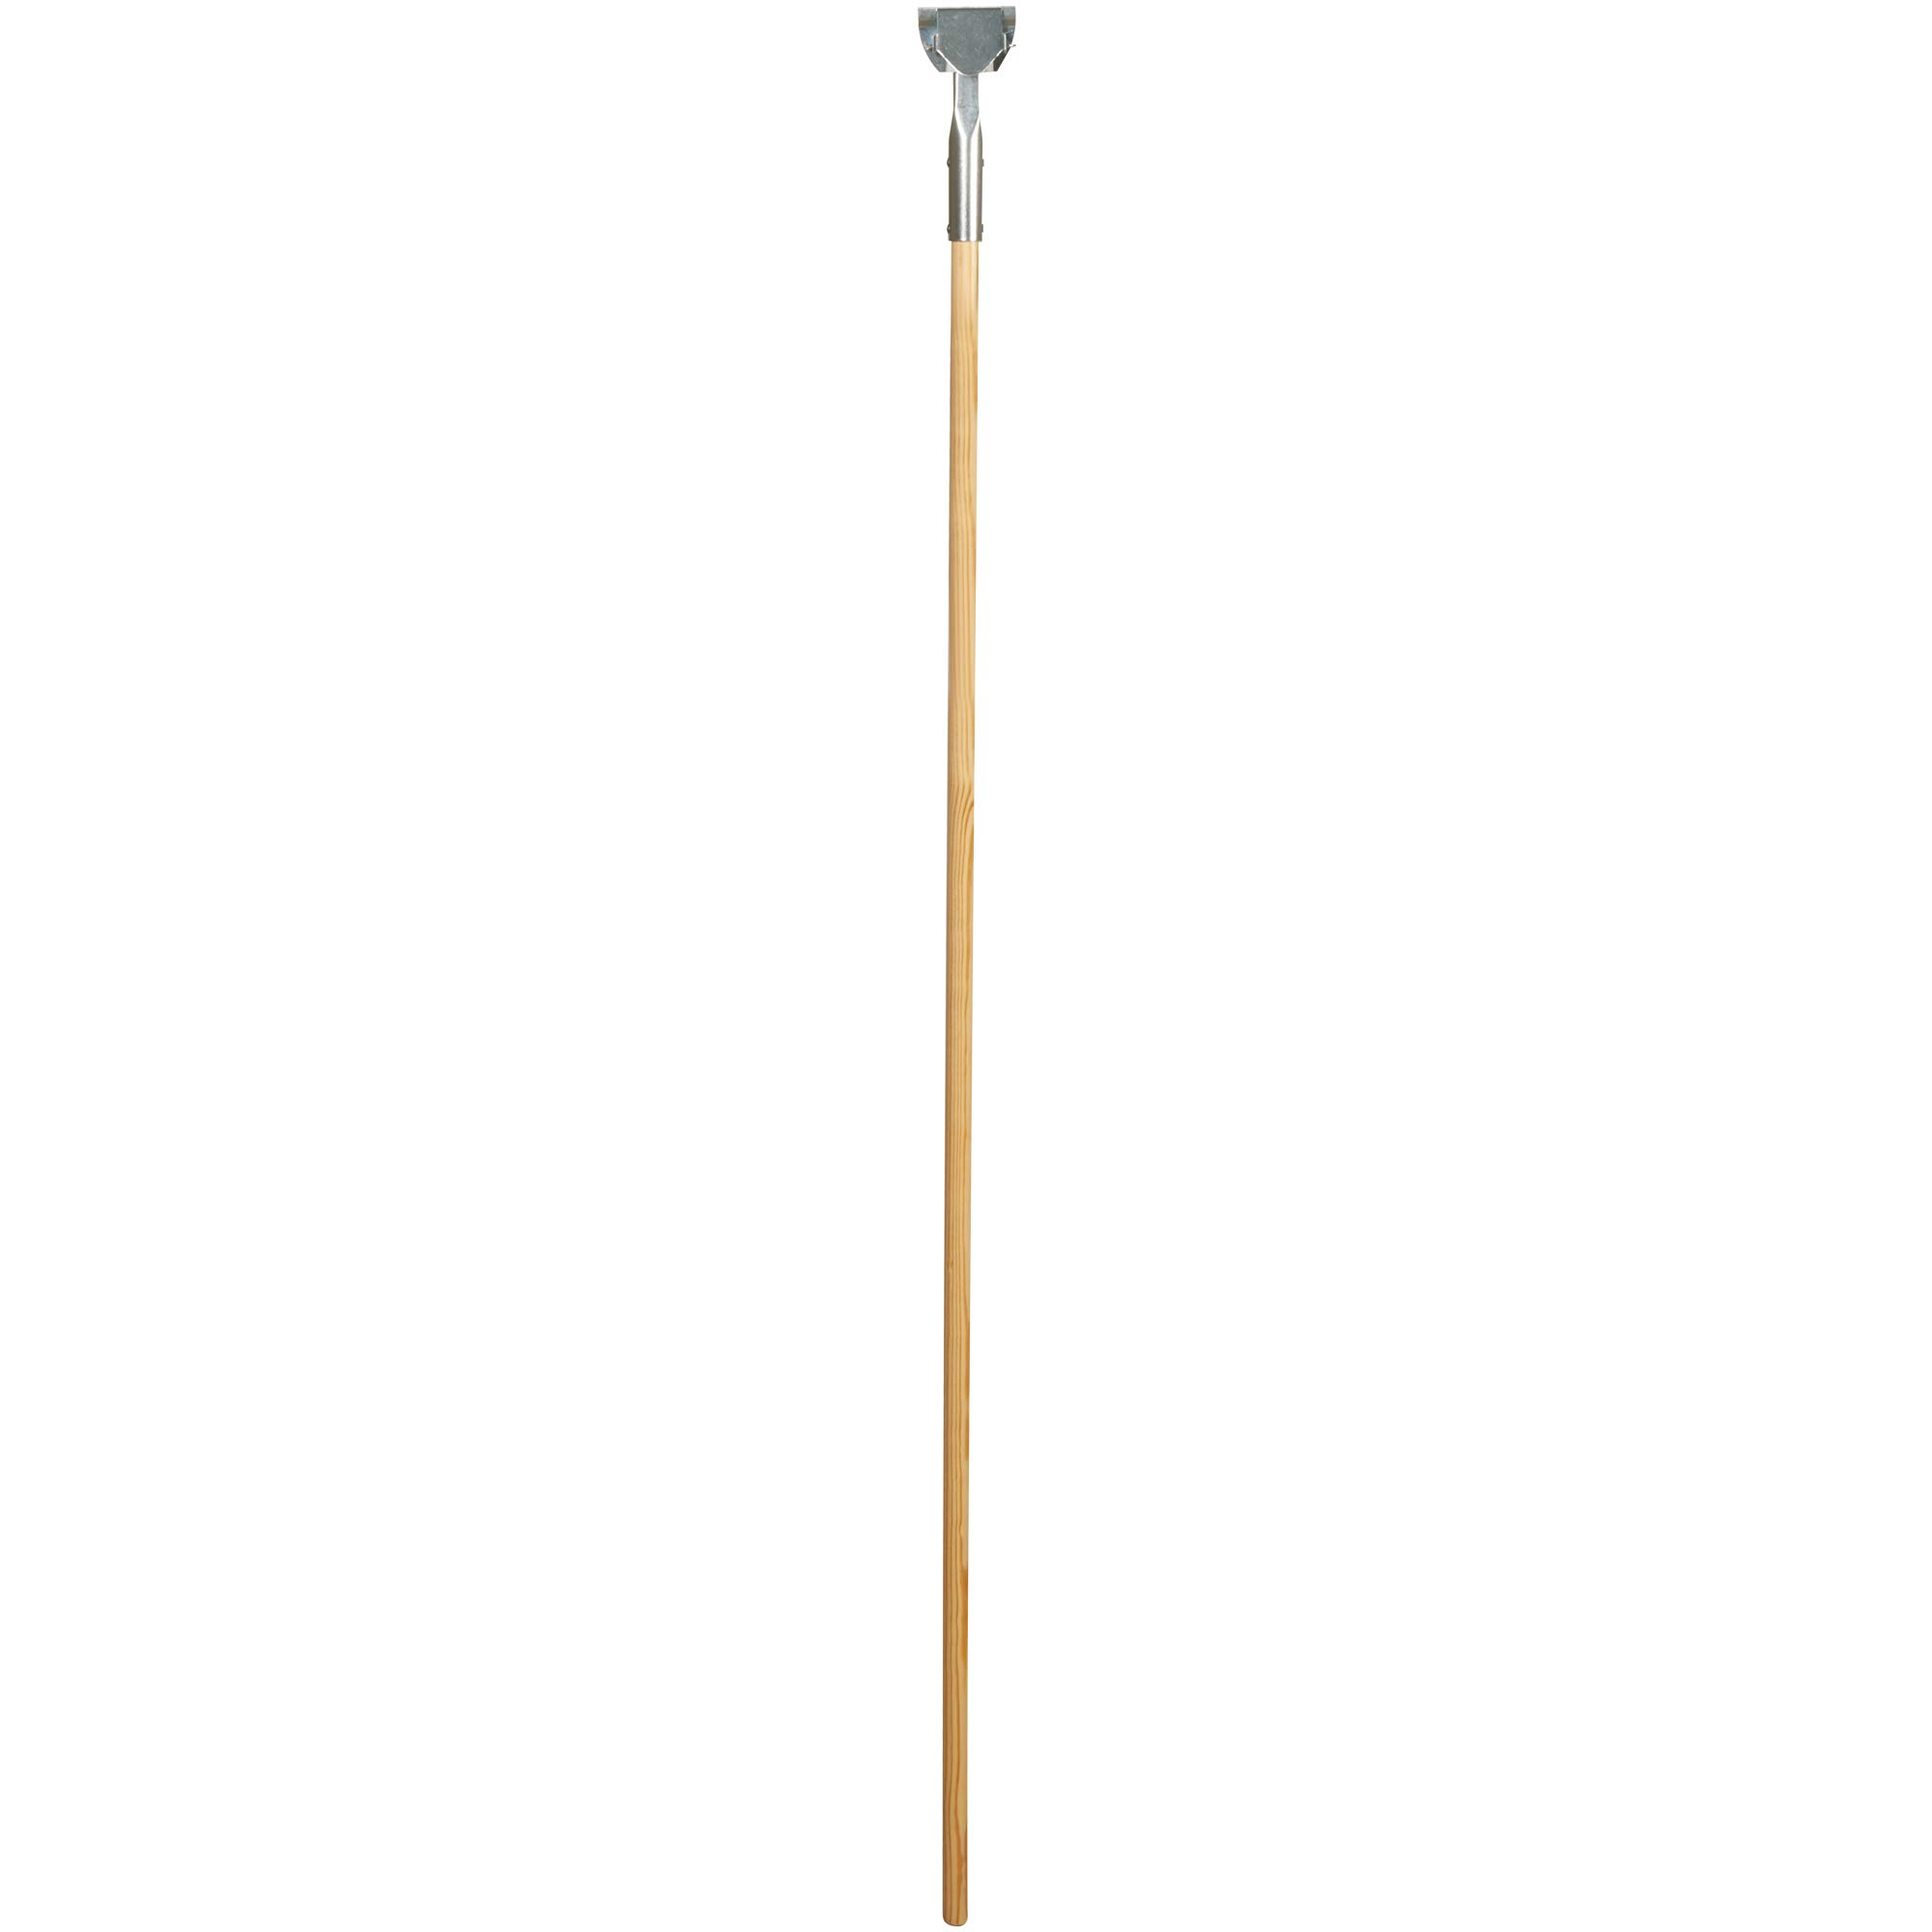 Clip-On Dust Mop Handle, 60'', Brown/Silver, 1/Each by Tape Logic